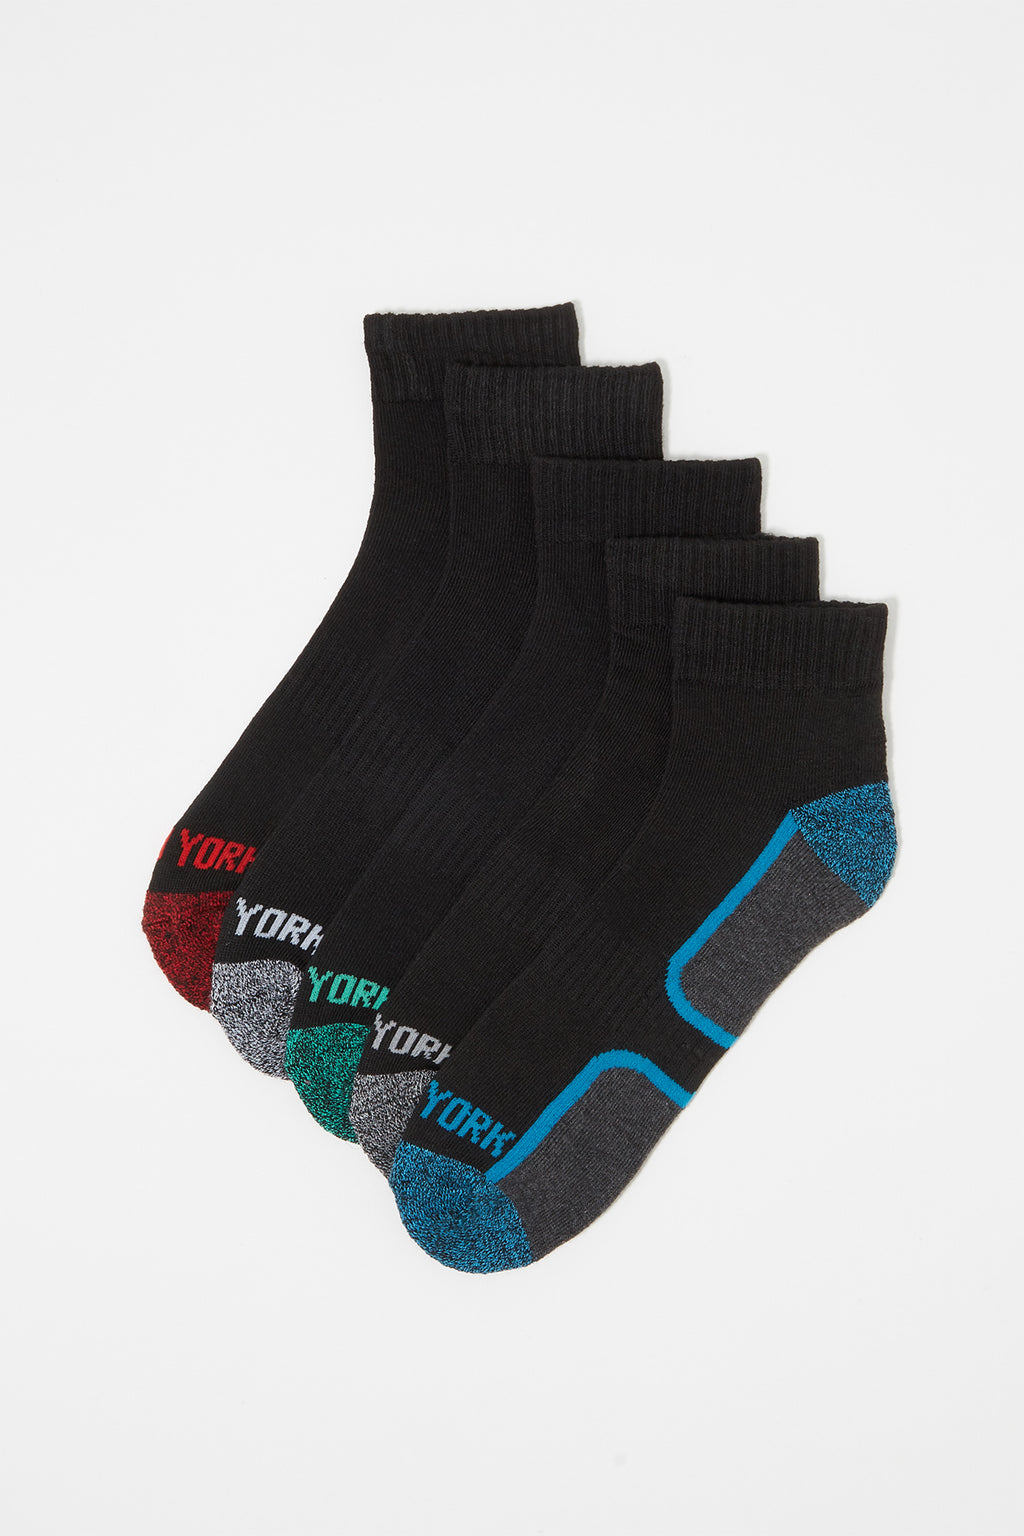 Zoo York Mens Athletic Quarter Socks (5 Pairs)